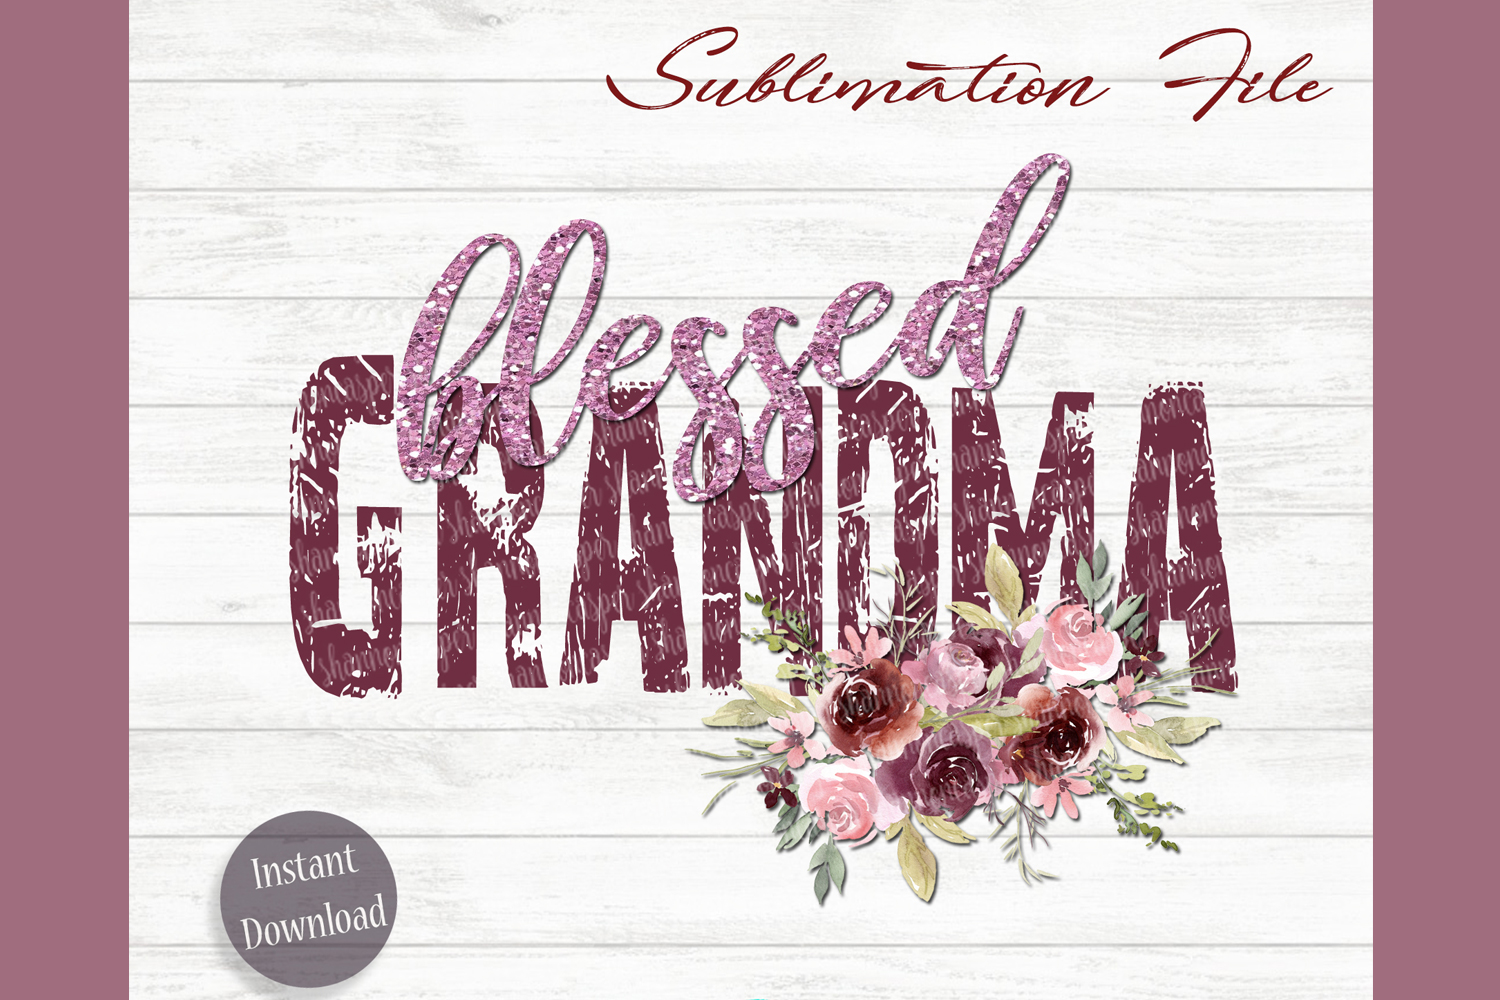 Blessed Grandma Png File  Sublimation File example image 1